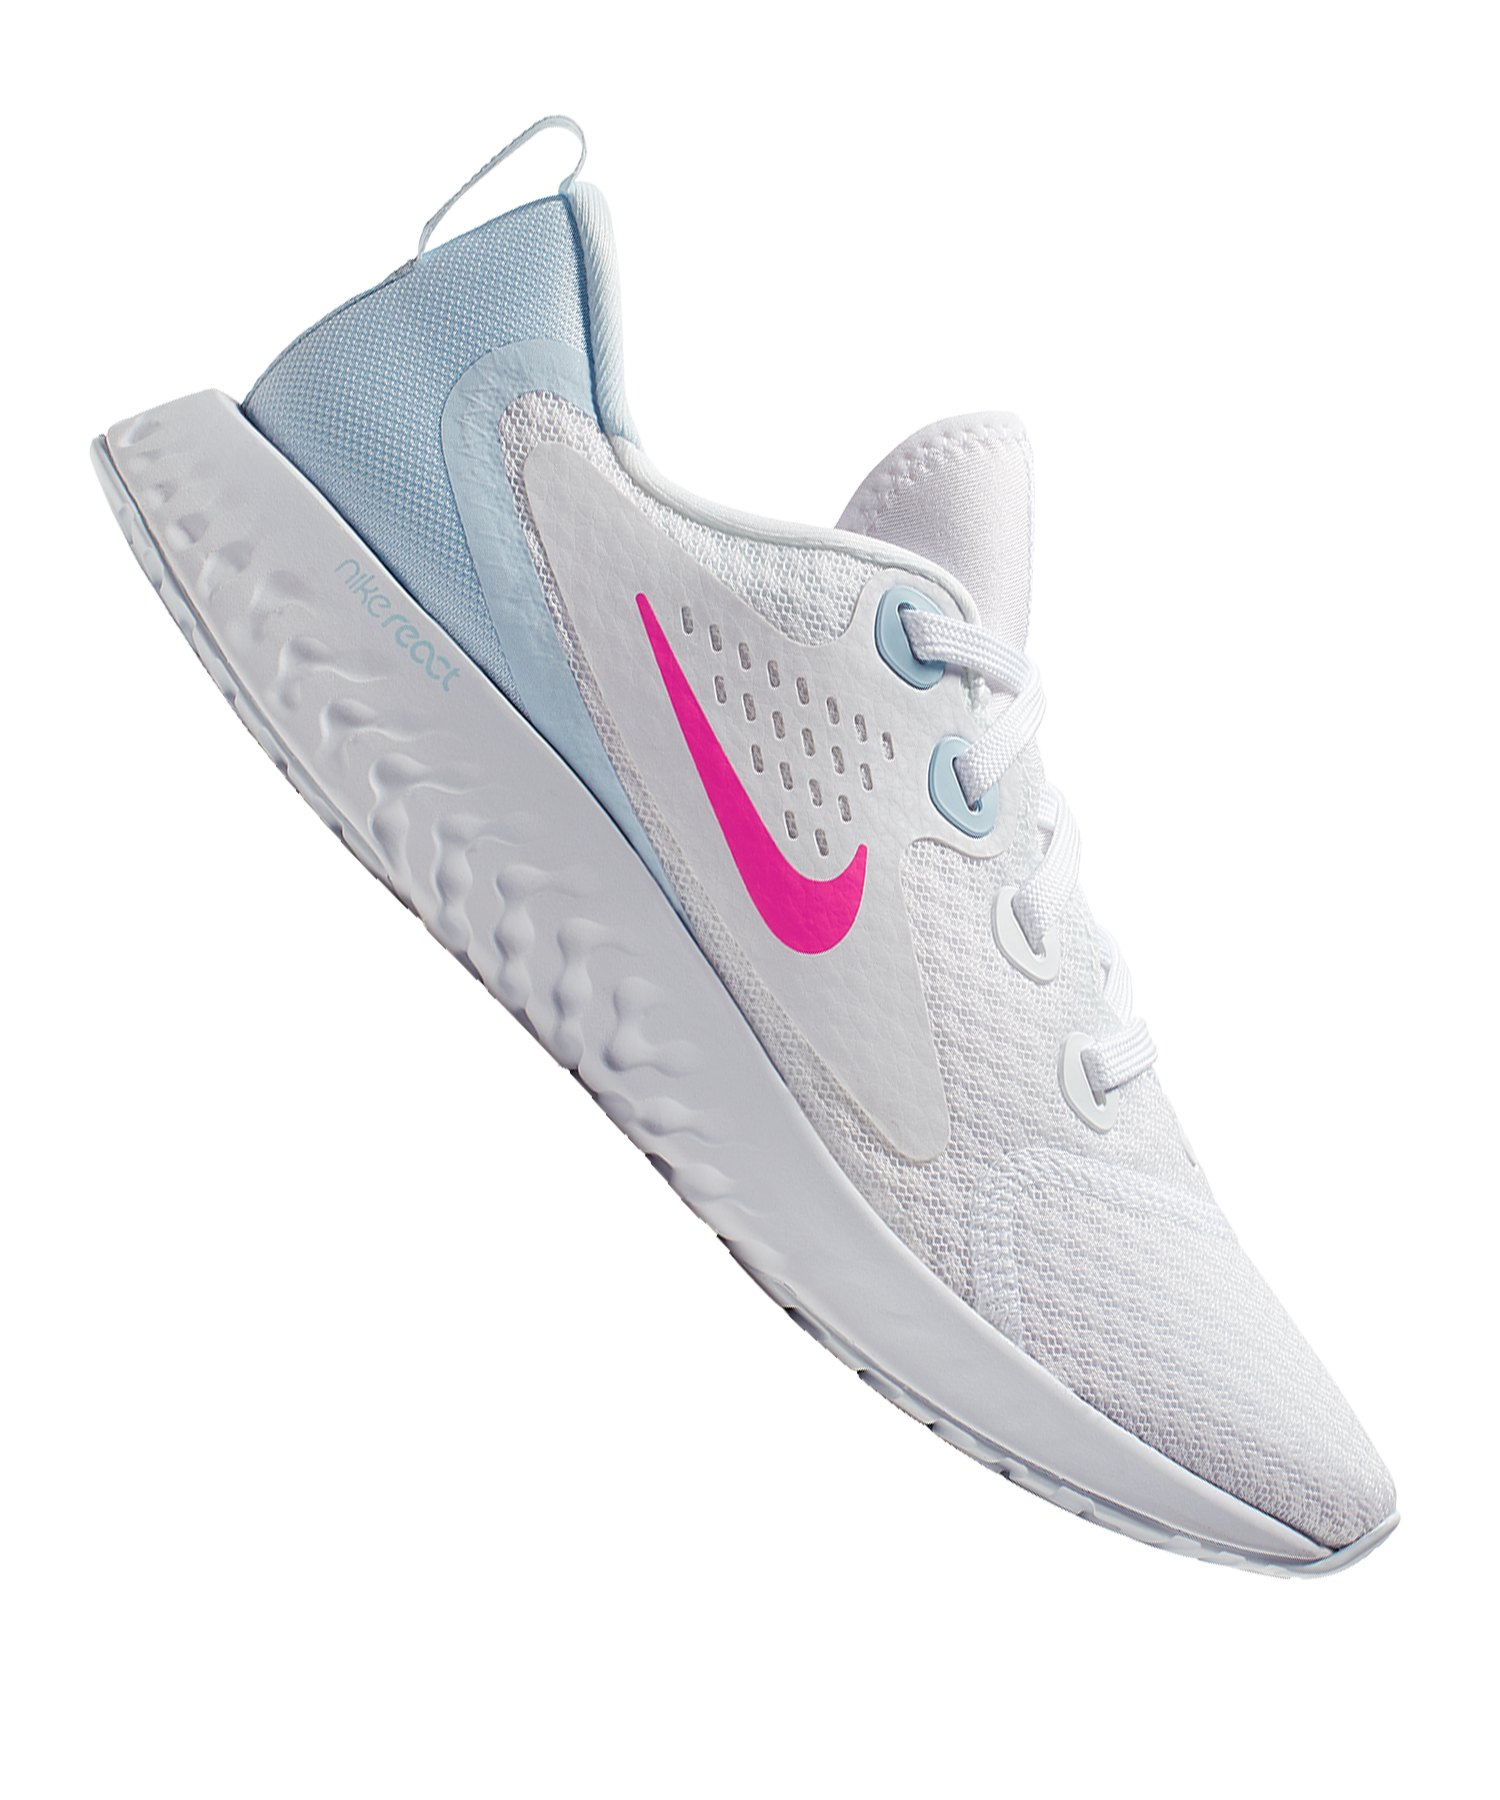 Nike Legend React Running Damen Weiss F102 - Weiss